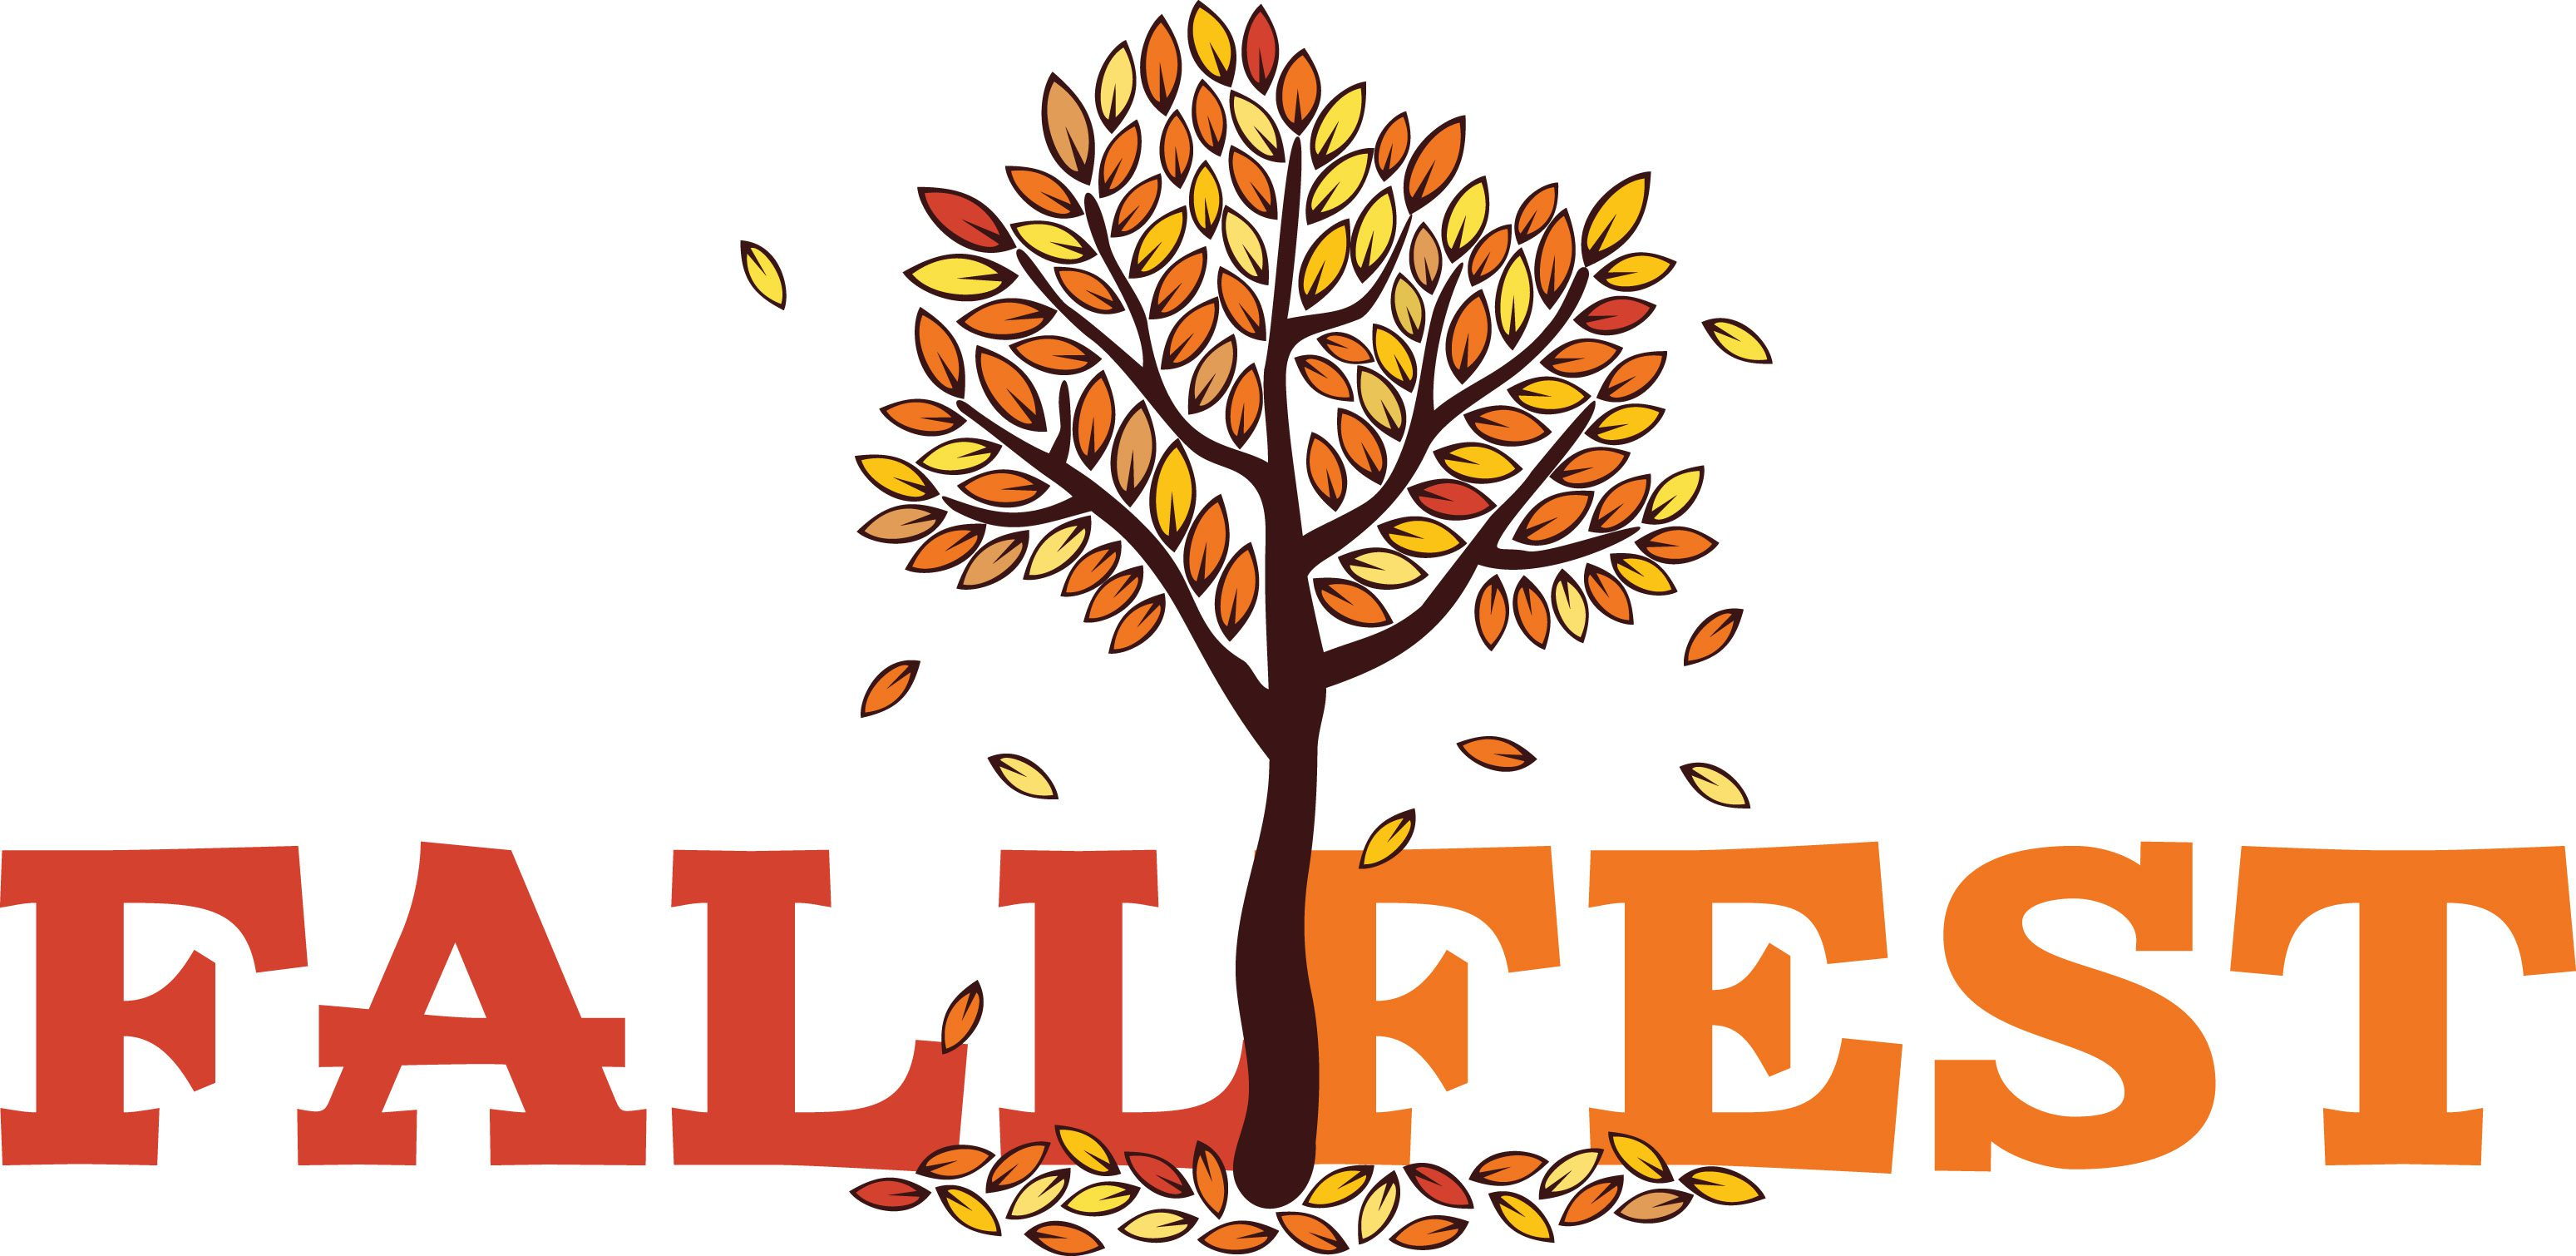 Clipart of a tree in autumn with the title FALLFEST